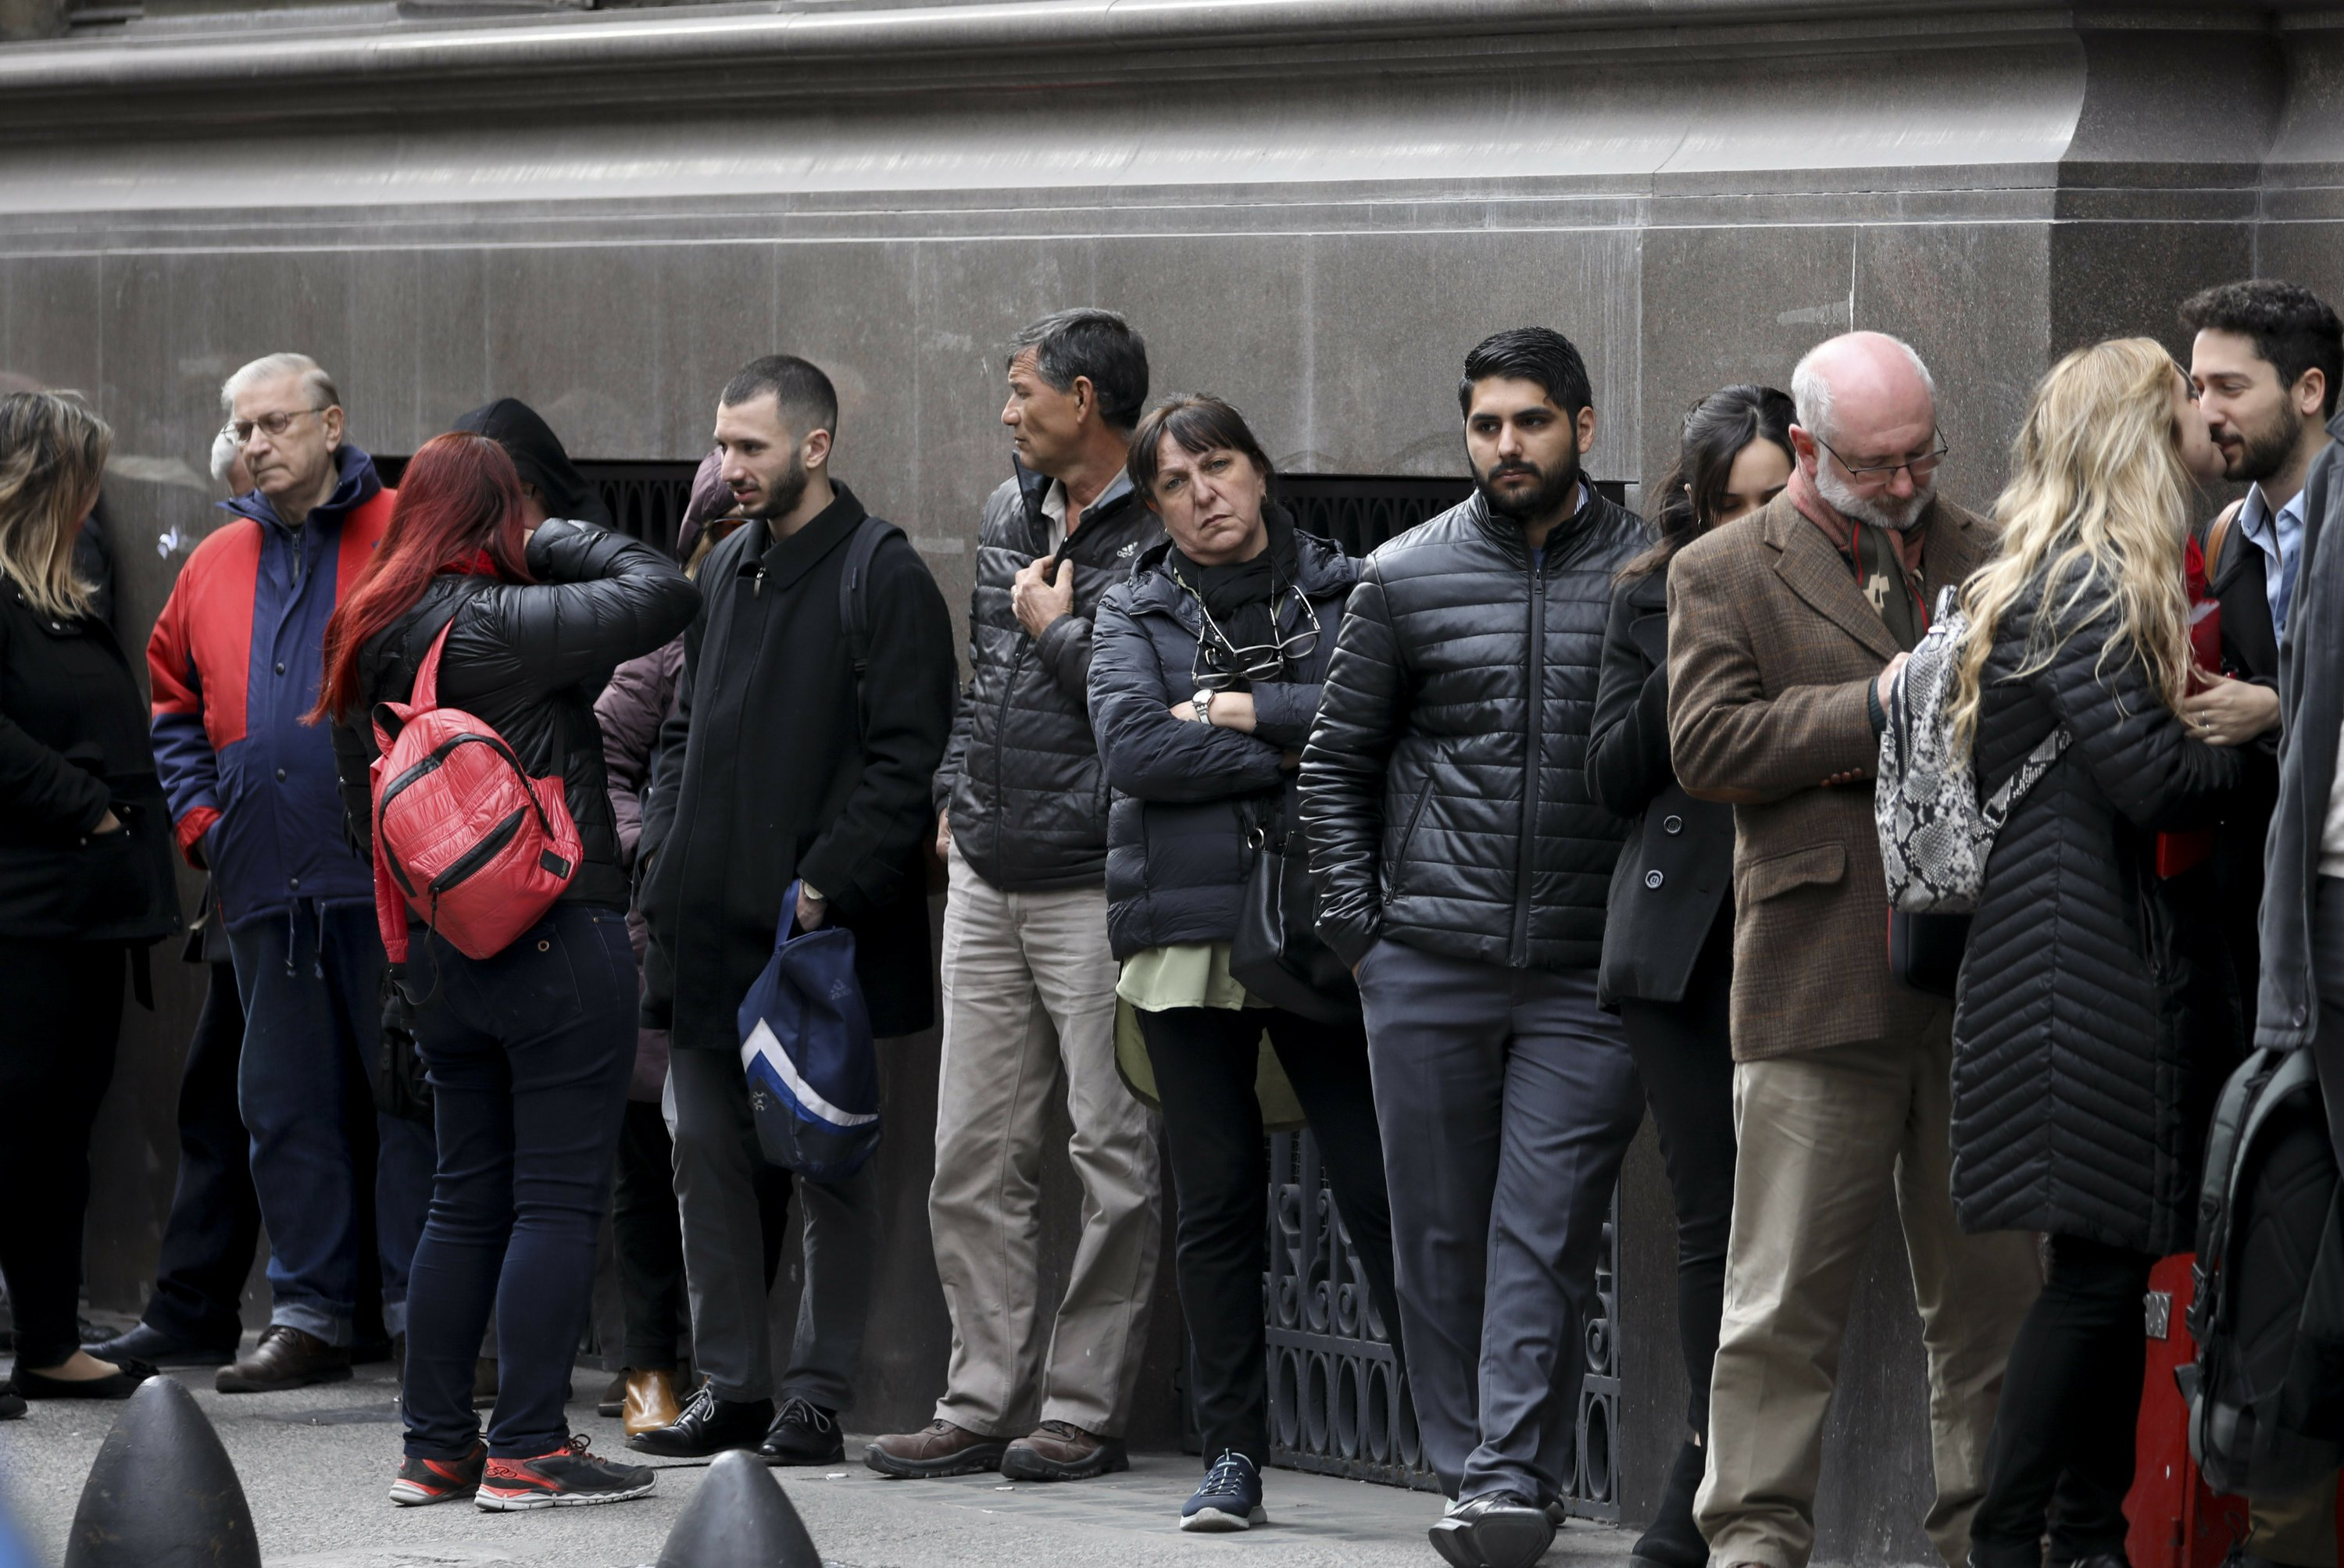 Restrictions on hard currency take effect in Argentina.